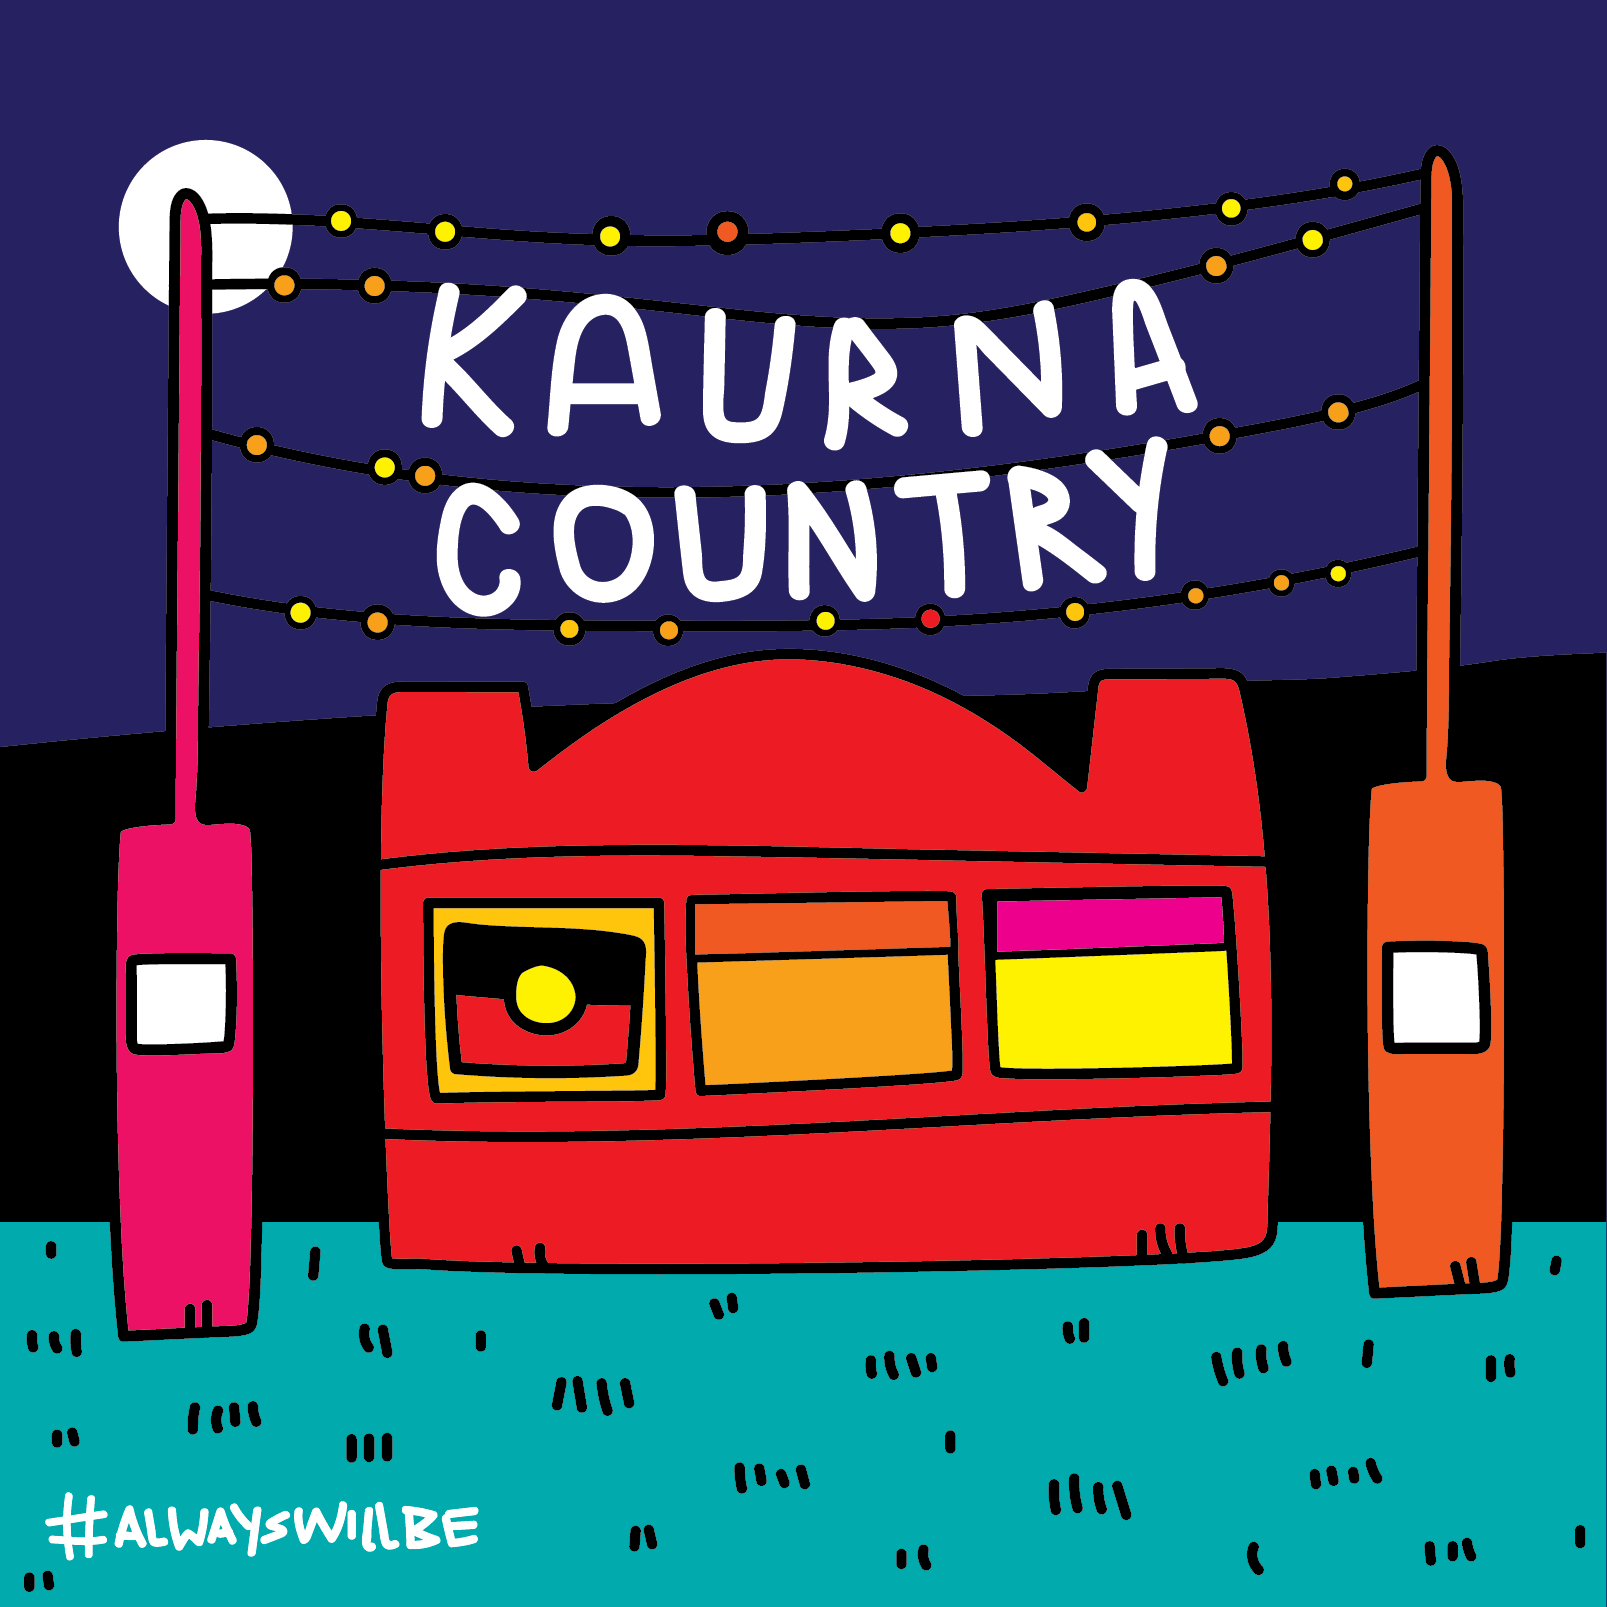 Kaurna Country (Adelaide)